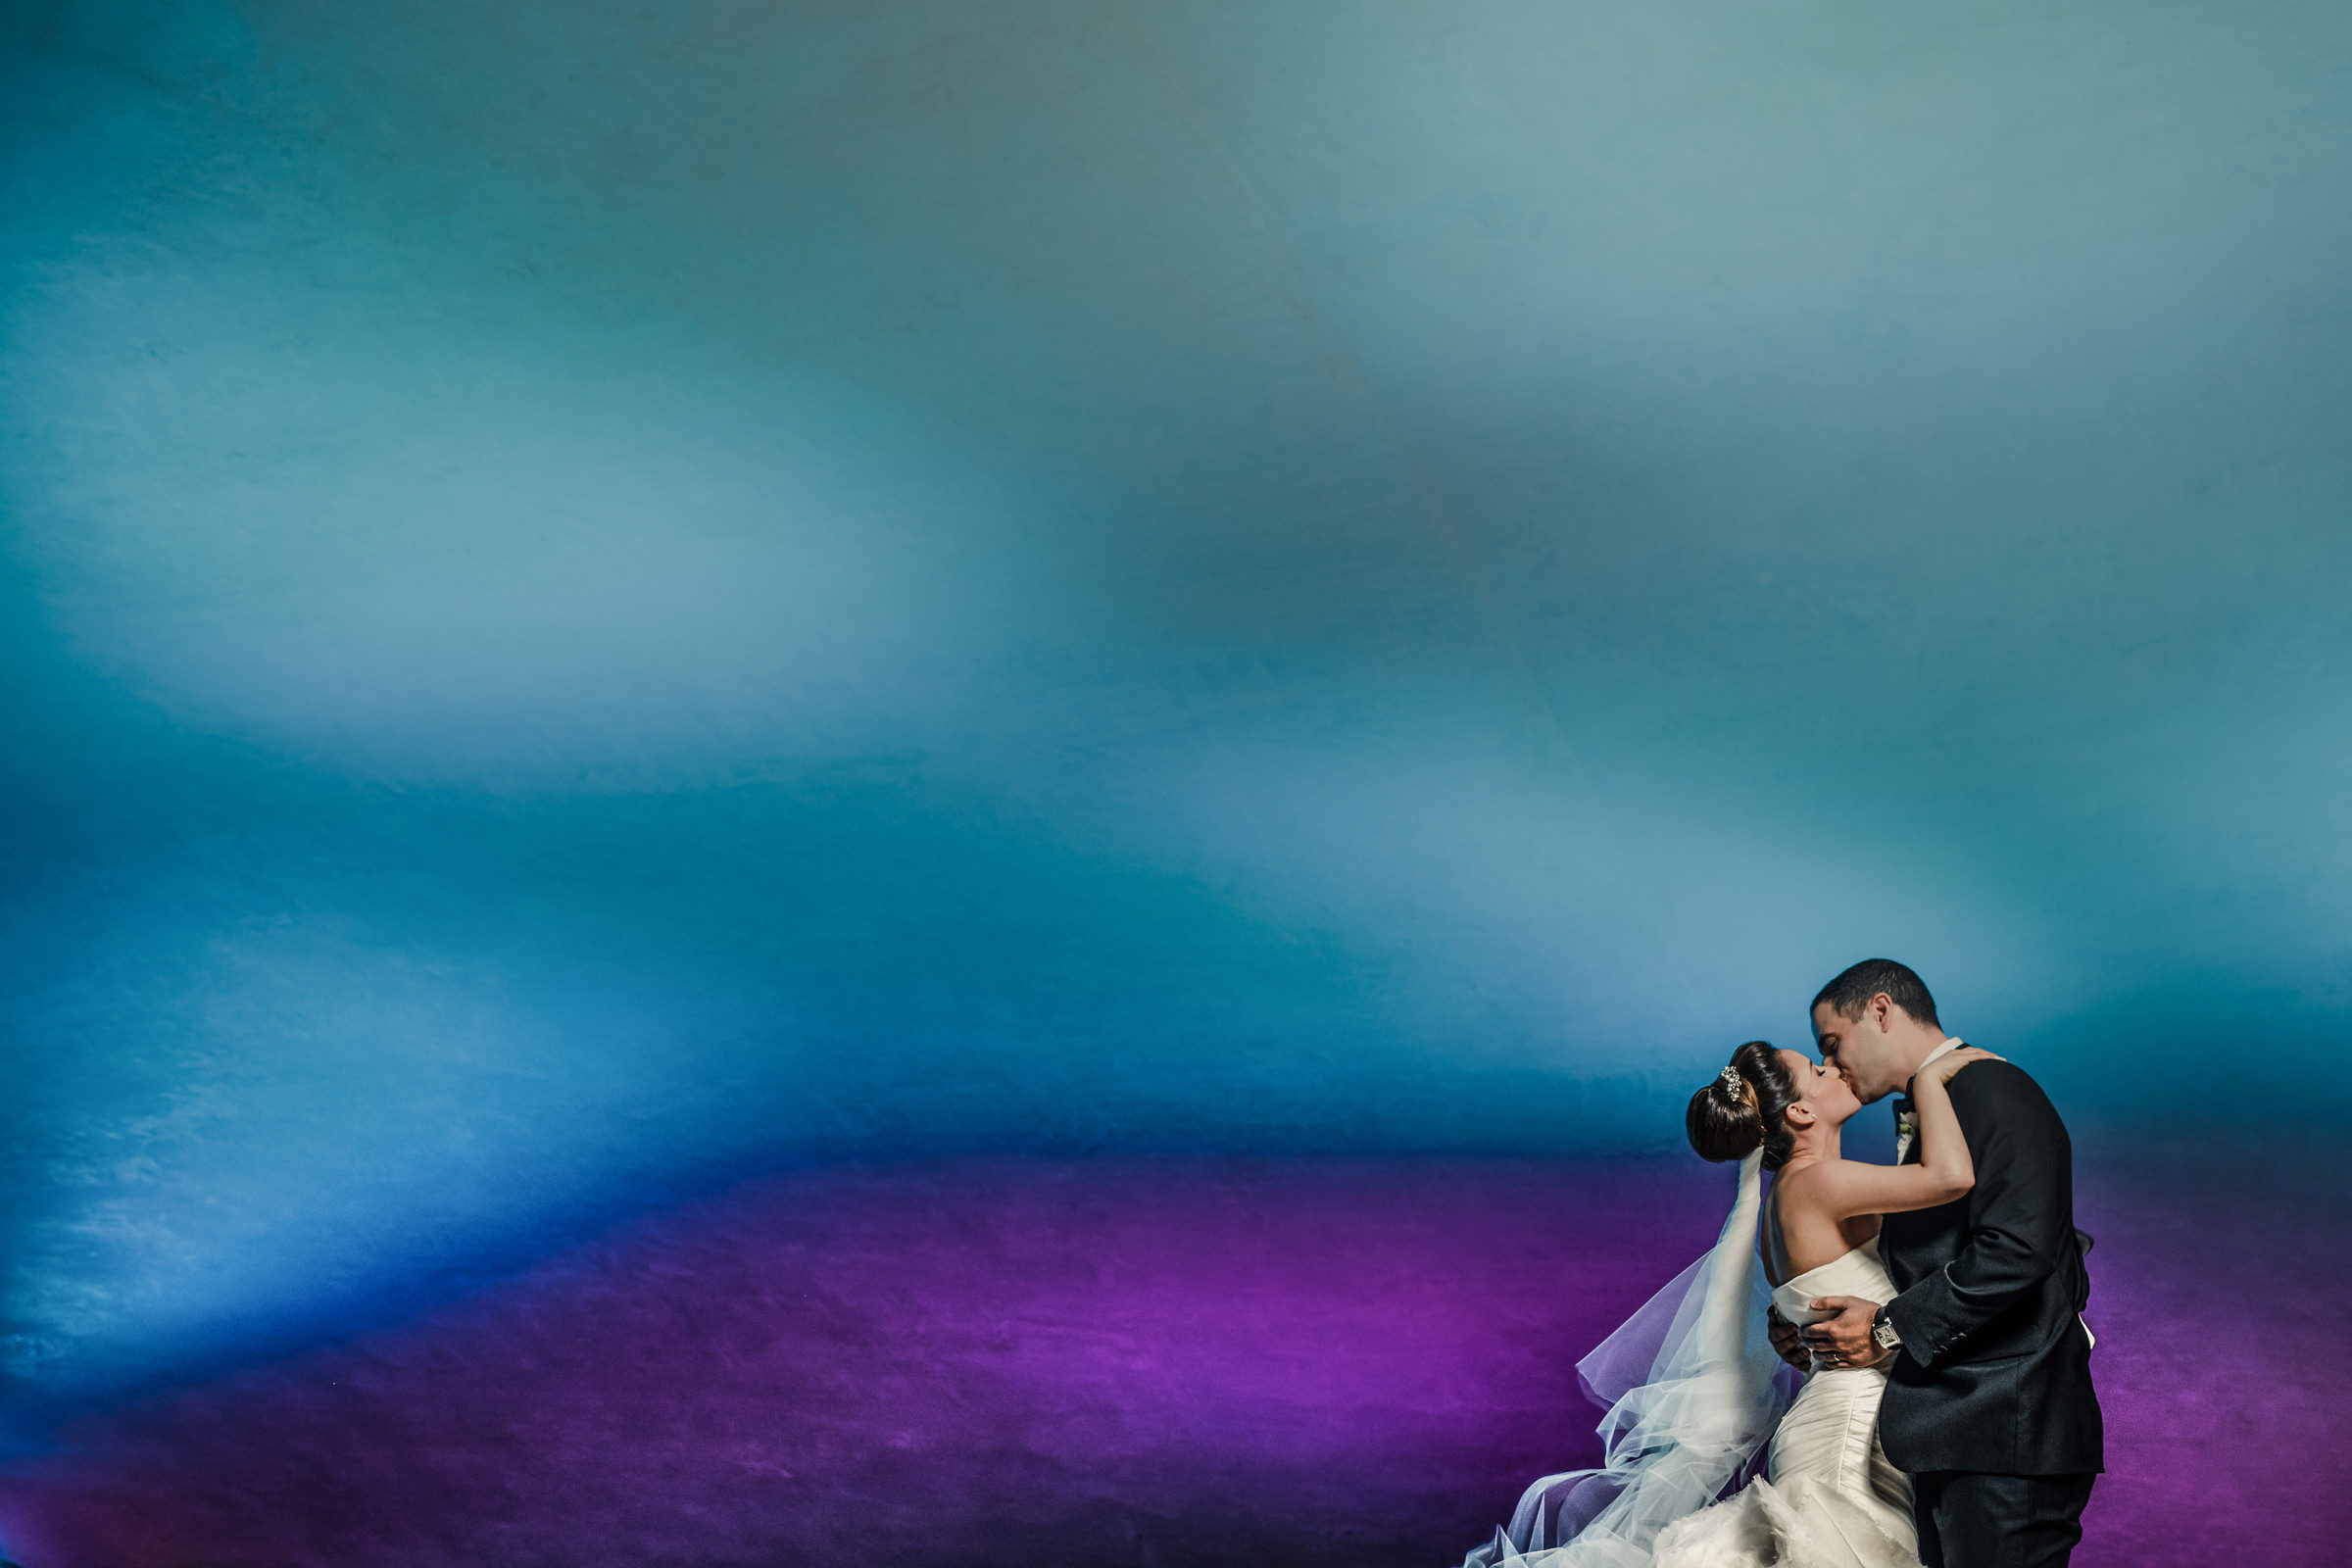 Couple portrait with blurred background - photo by El Marco Rojo